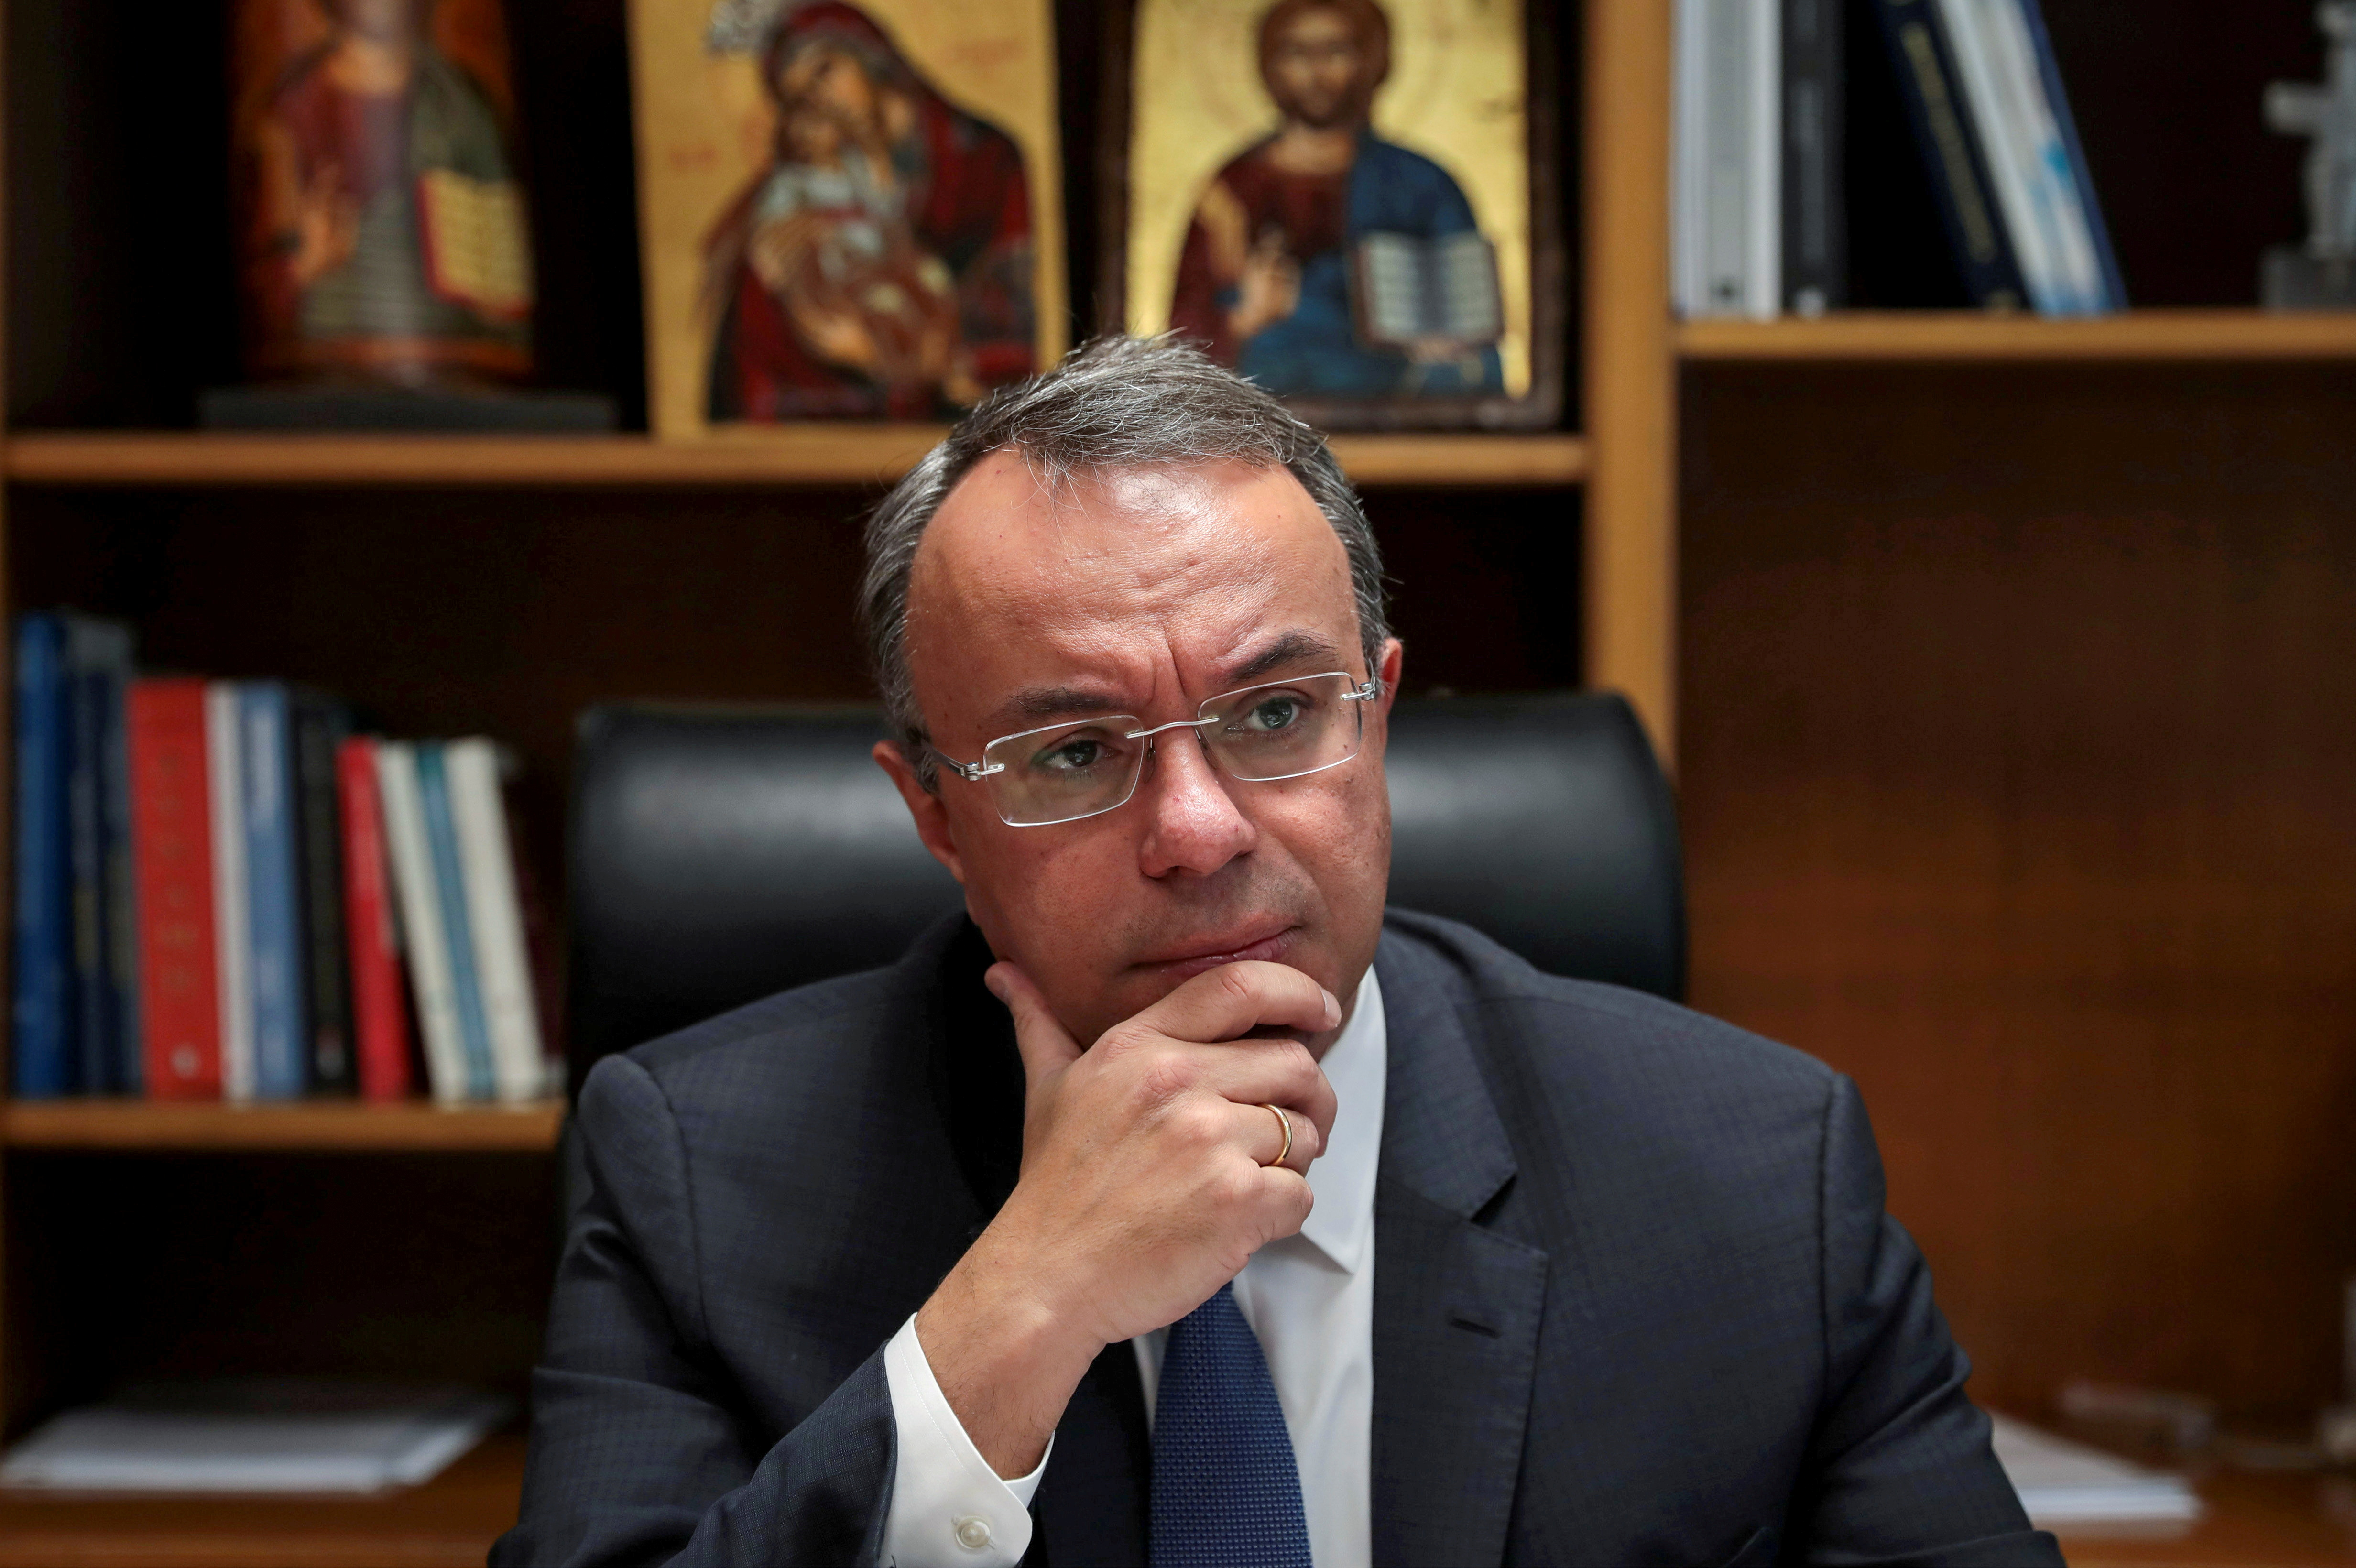 Greek Finance Minister Christos Staikouras pauses during an interview with Reuters at his office in the Finance Ministry in Athens, Greece, December 17, 2019. REUTERS/Costas Baltas